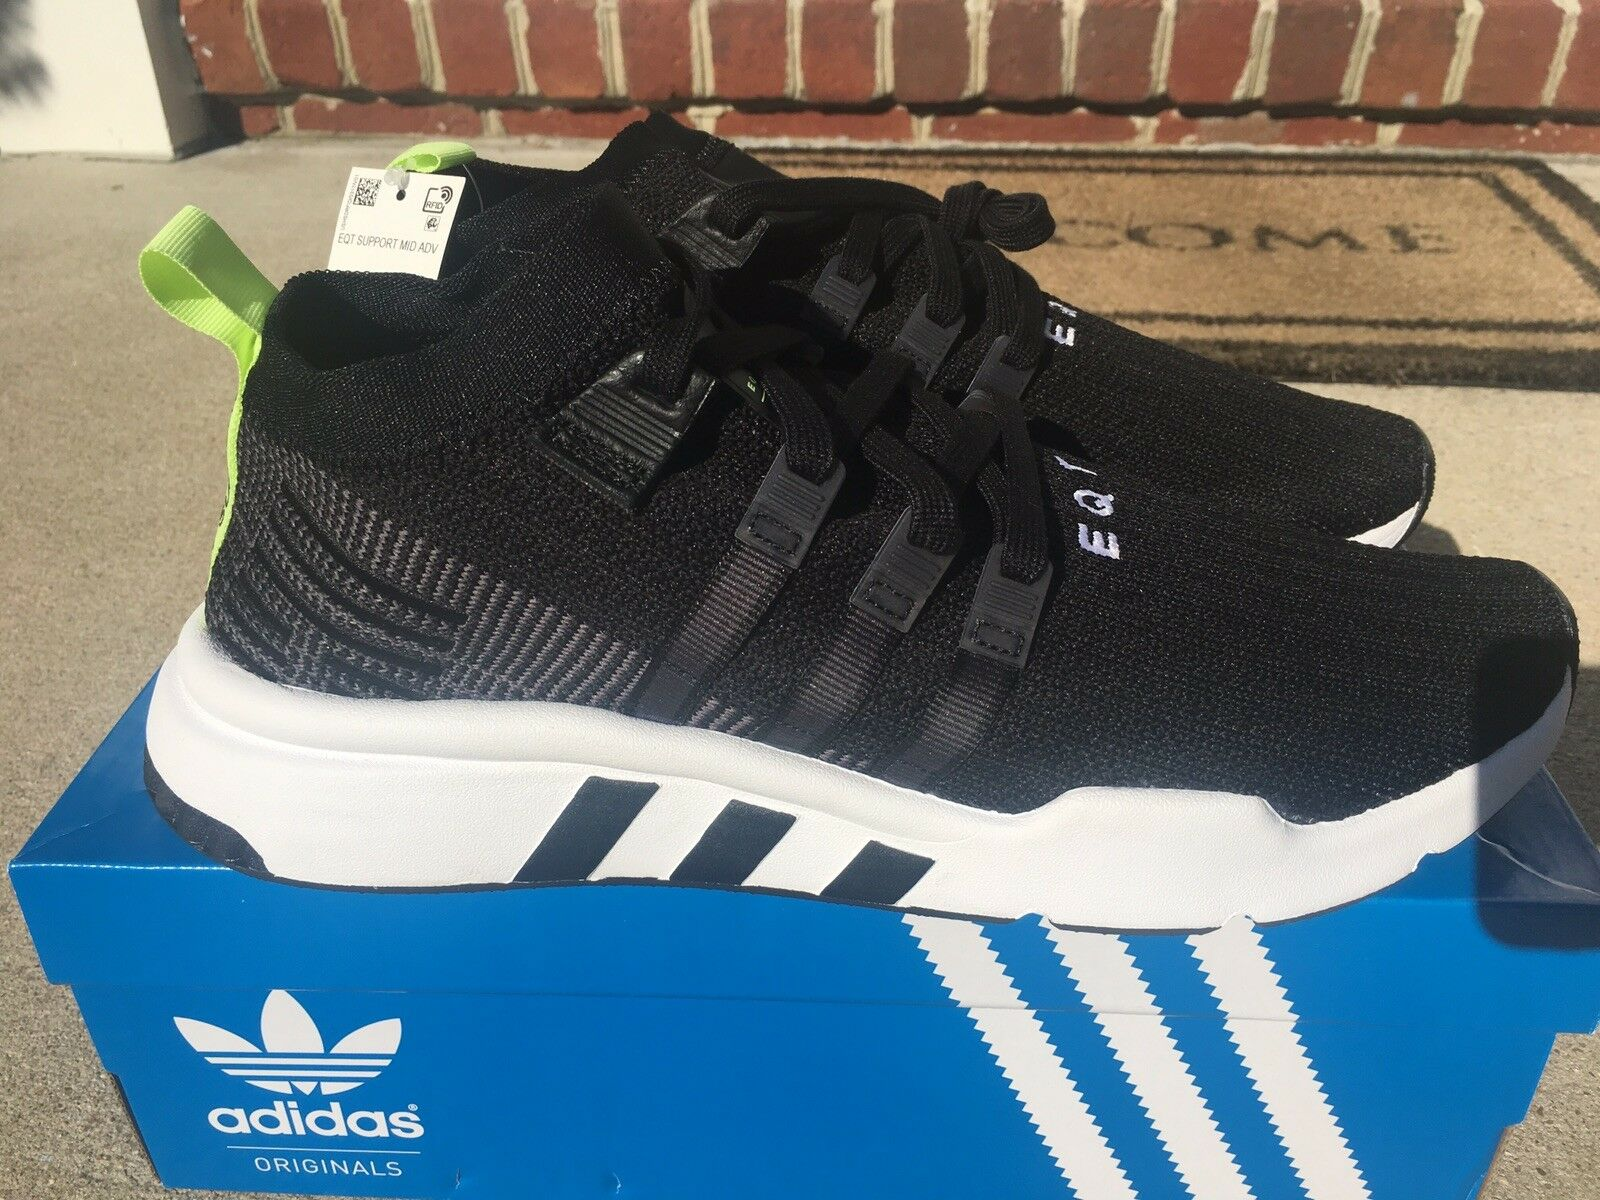 Adidas Originals EQT Support Mid ADV PK Boost Primeknit Black Men B37435 sz 13i